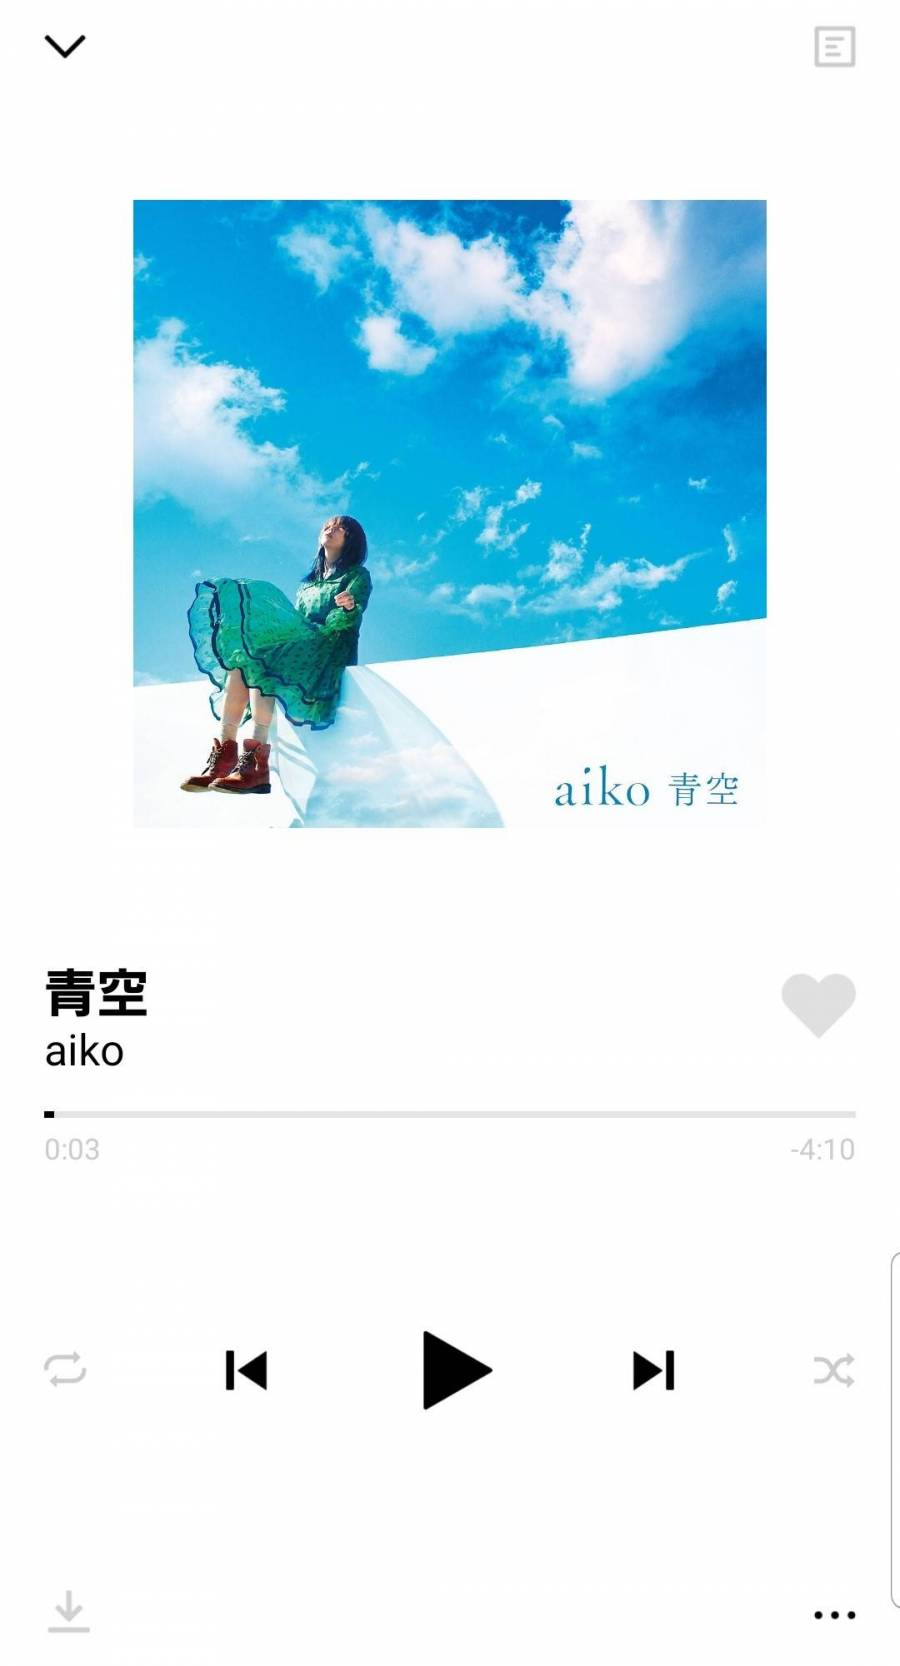 aiko 青空